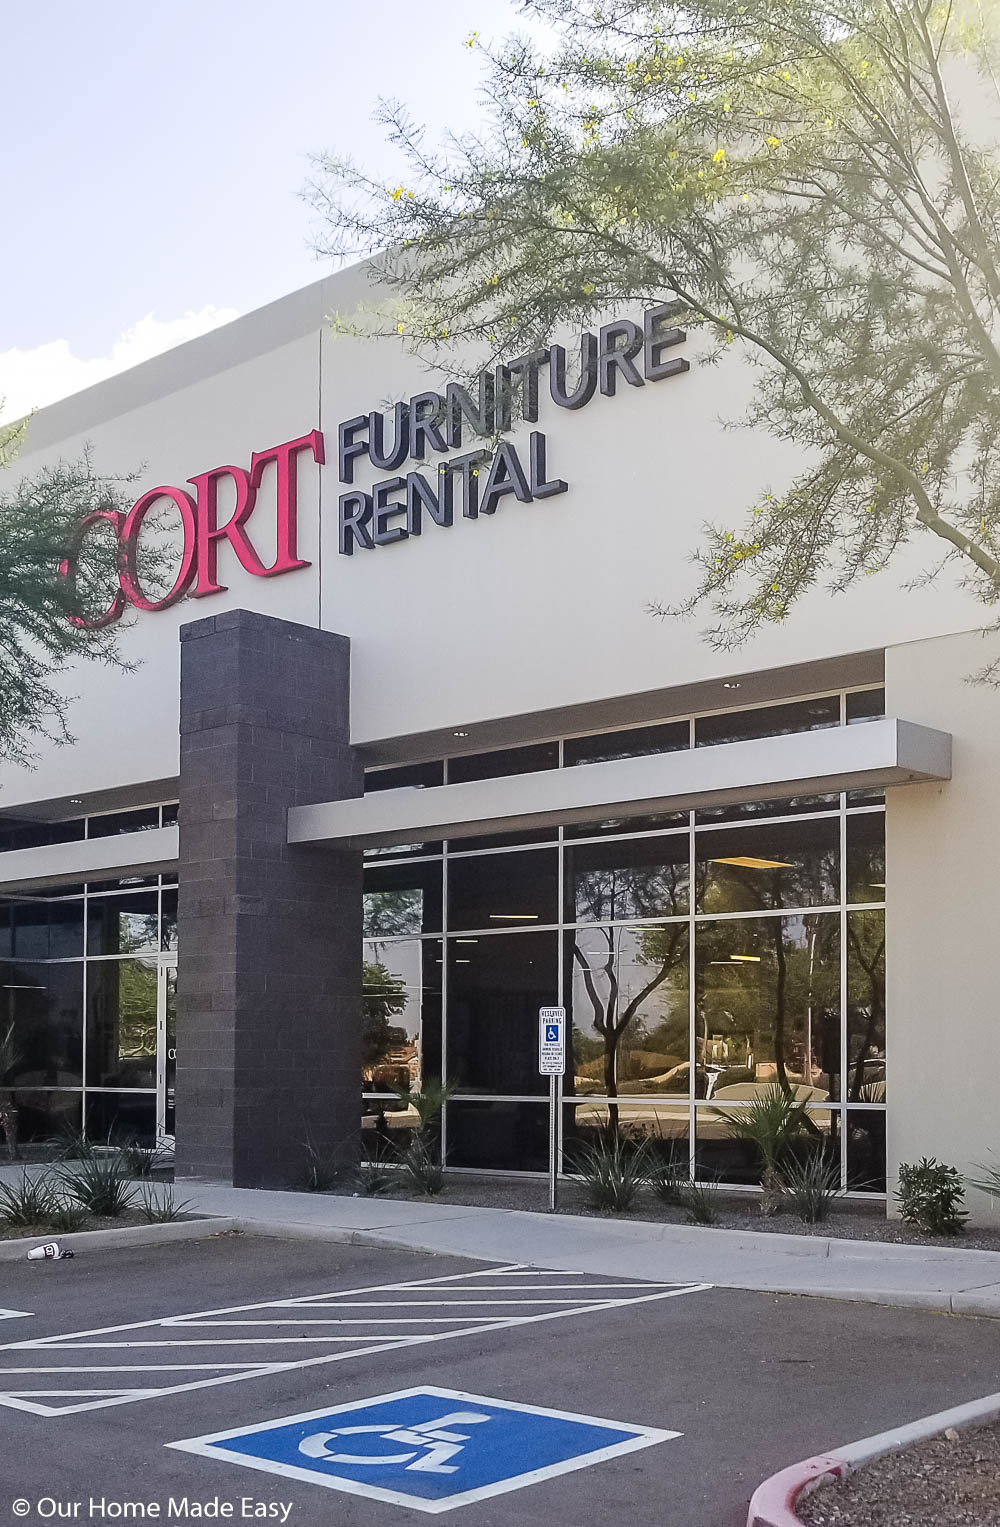 CORT Furniture Rental can help you make your temporary house feel like home